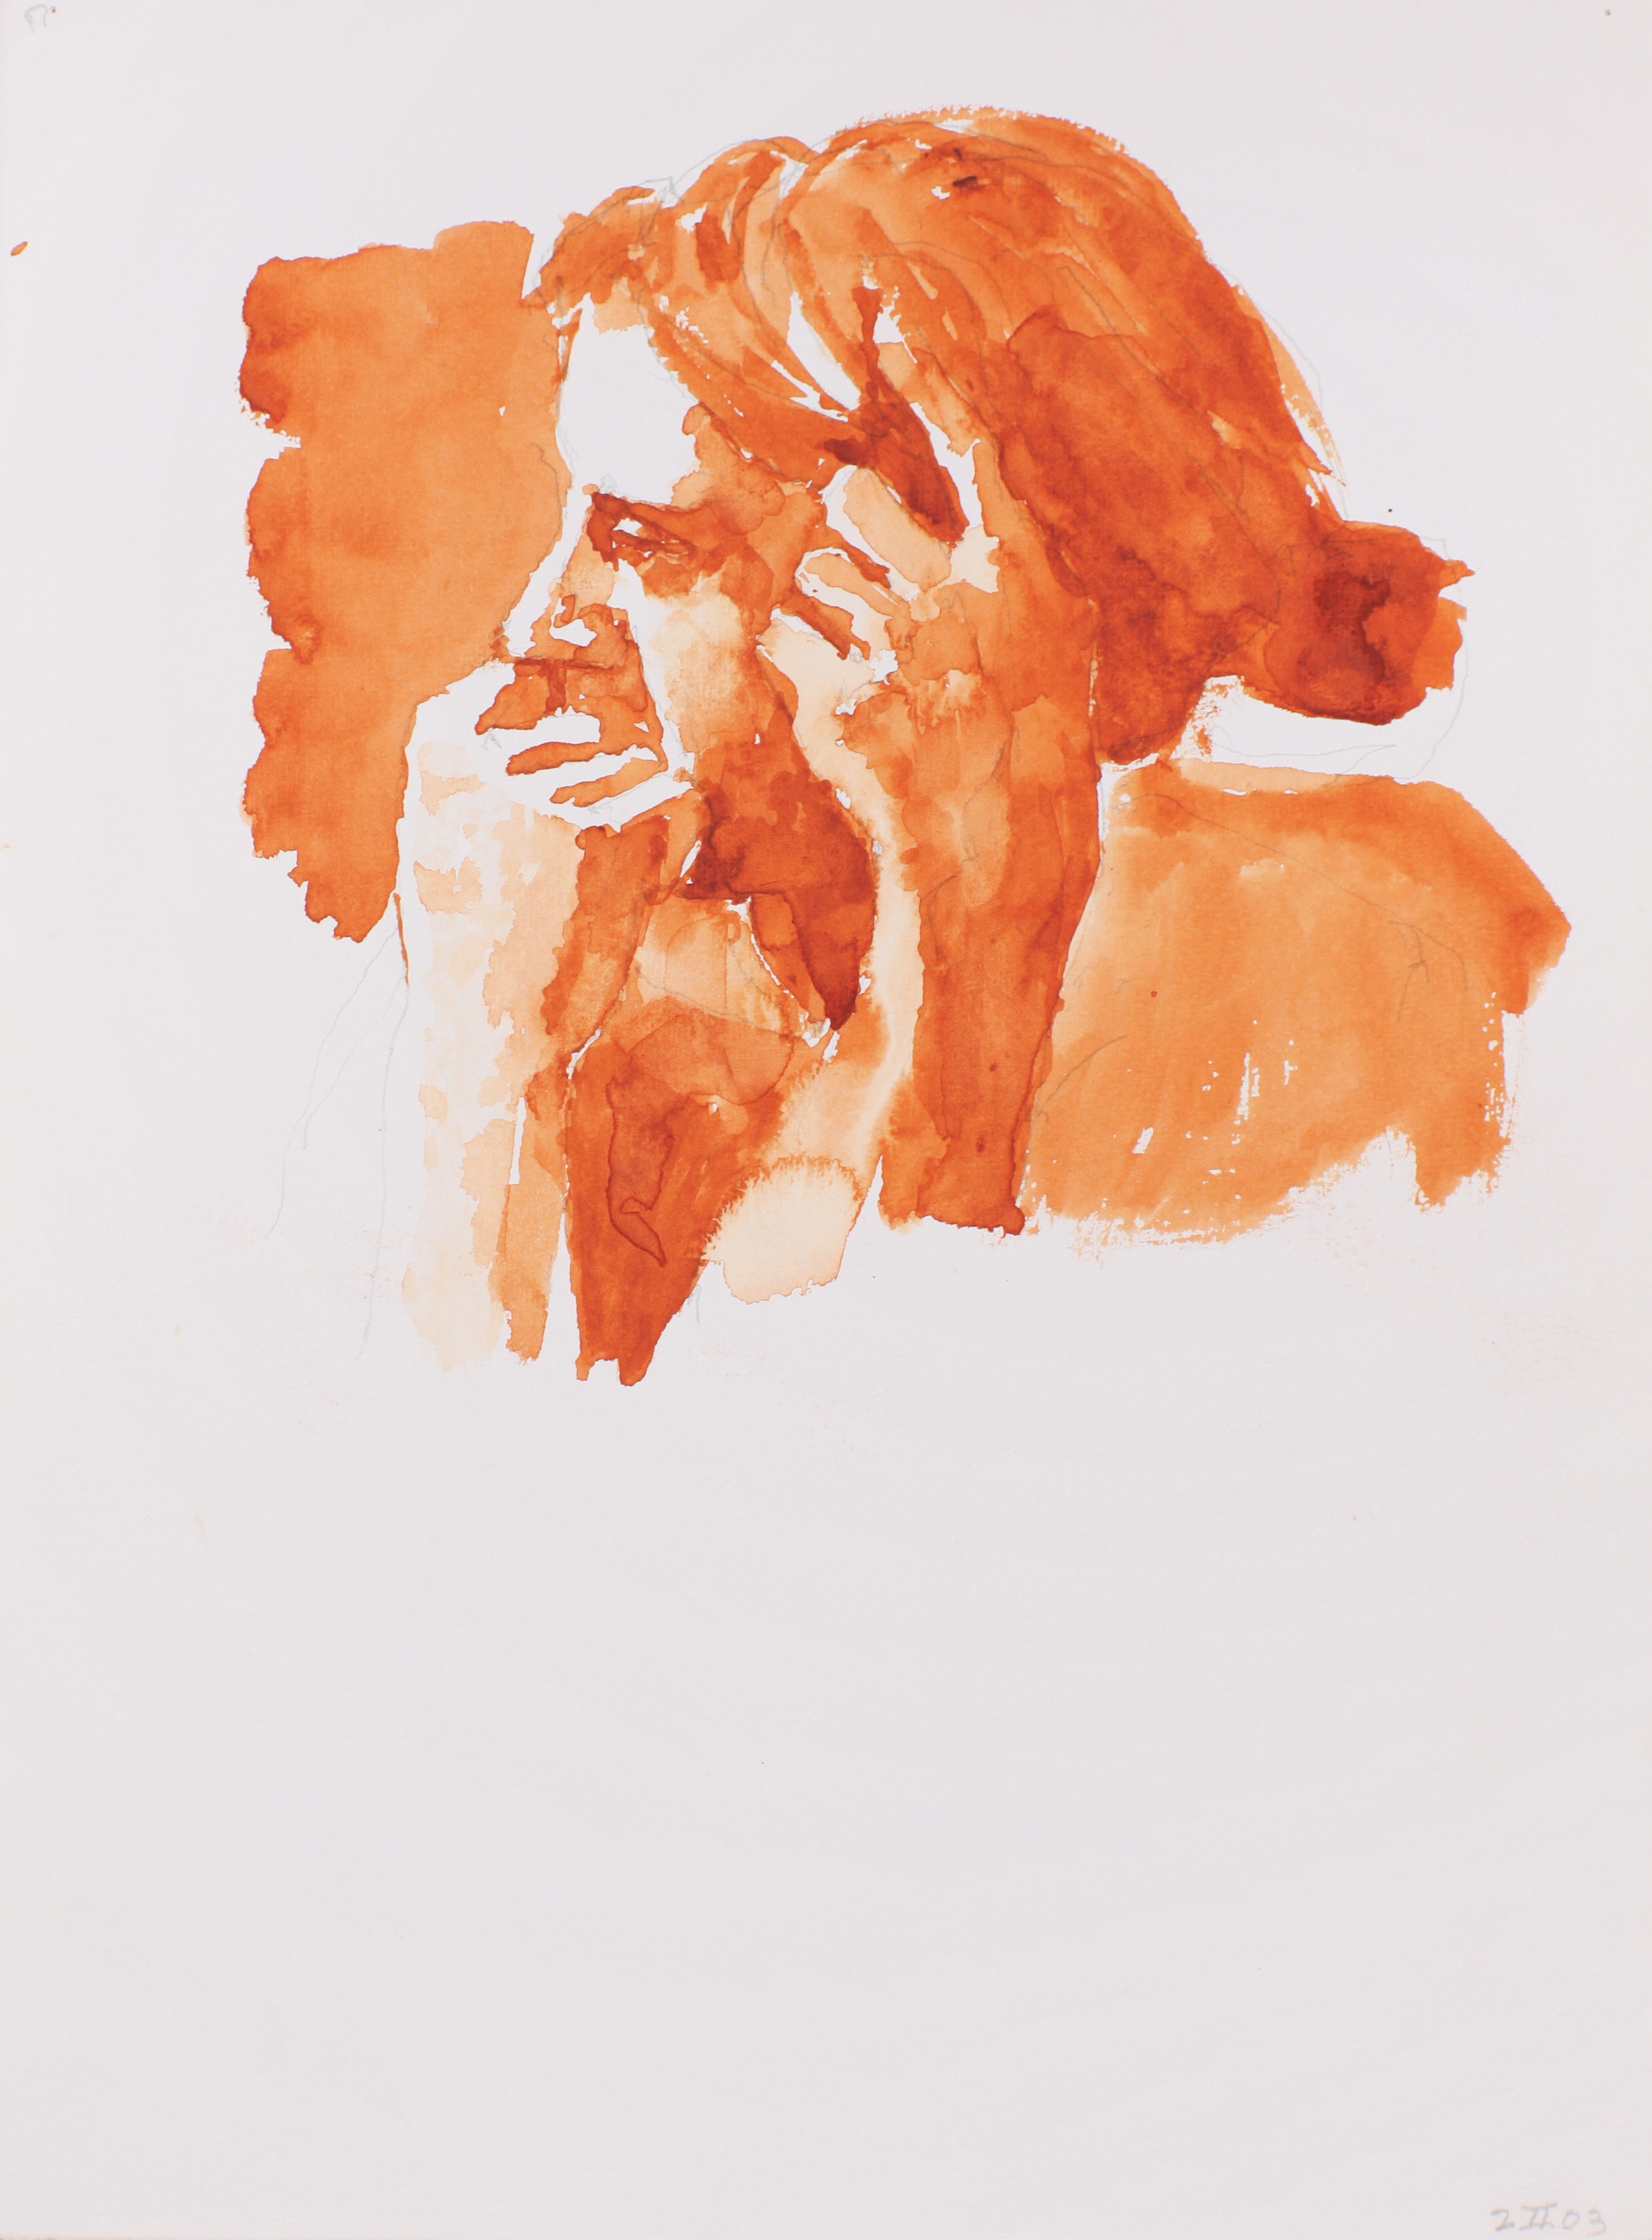 2003_Head_and_Hands_watercolour_and_pencil_on_paper_15x11in_WPF199.jpg